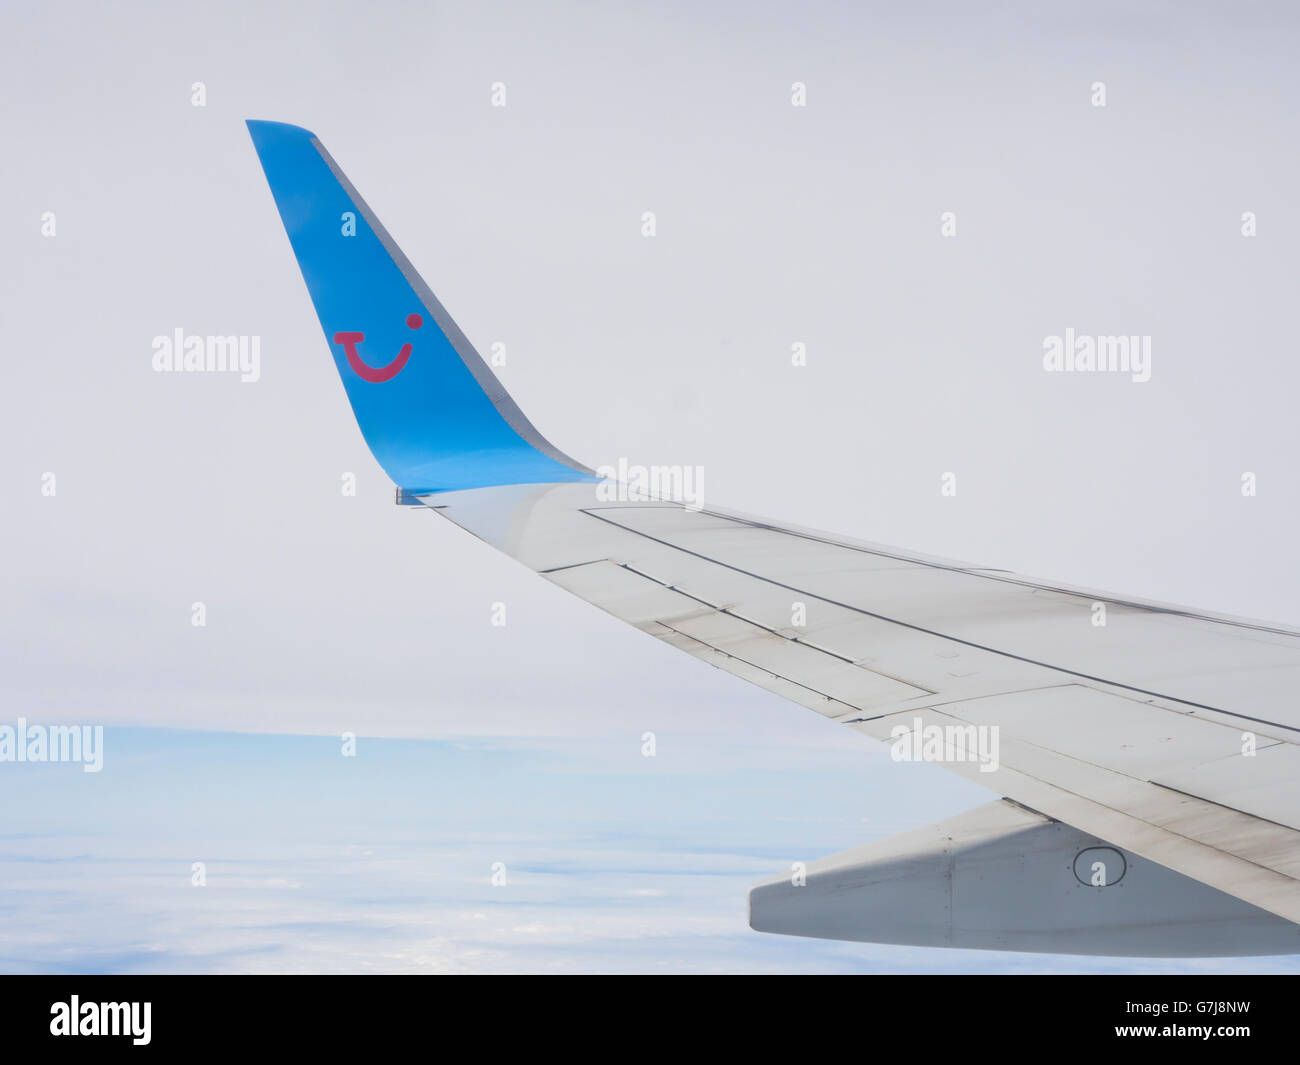 Blended winglet on a Boing airplane, smiling TUI logo in blue and red, taking passengers to or from a packaged holiday - Stock Image